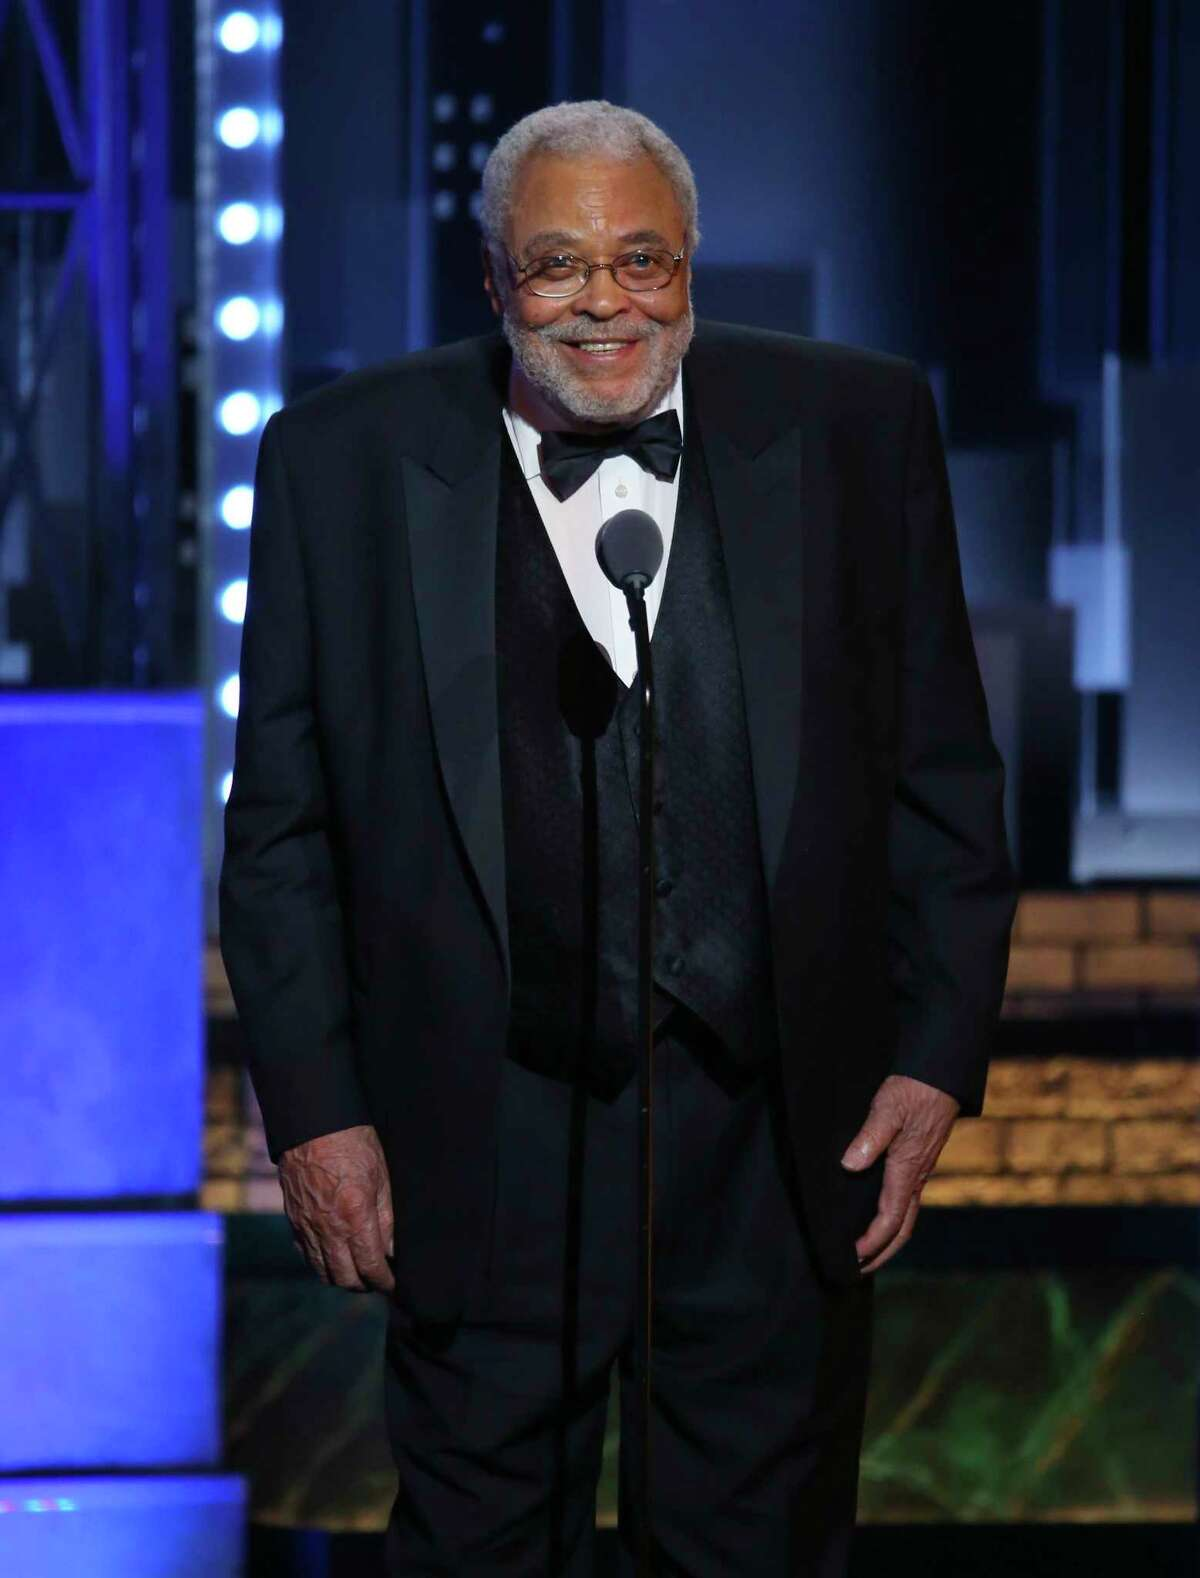 James Earl Jones accepts the special Tony award for Lifetime Achievement in the Theatre at the 71st annual Tony Awards on June 11, 2017, in New York. Jones turned 90 on Jan. 17. (Photo by Michael Zorn/Invision/AP, File)